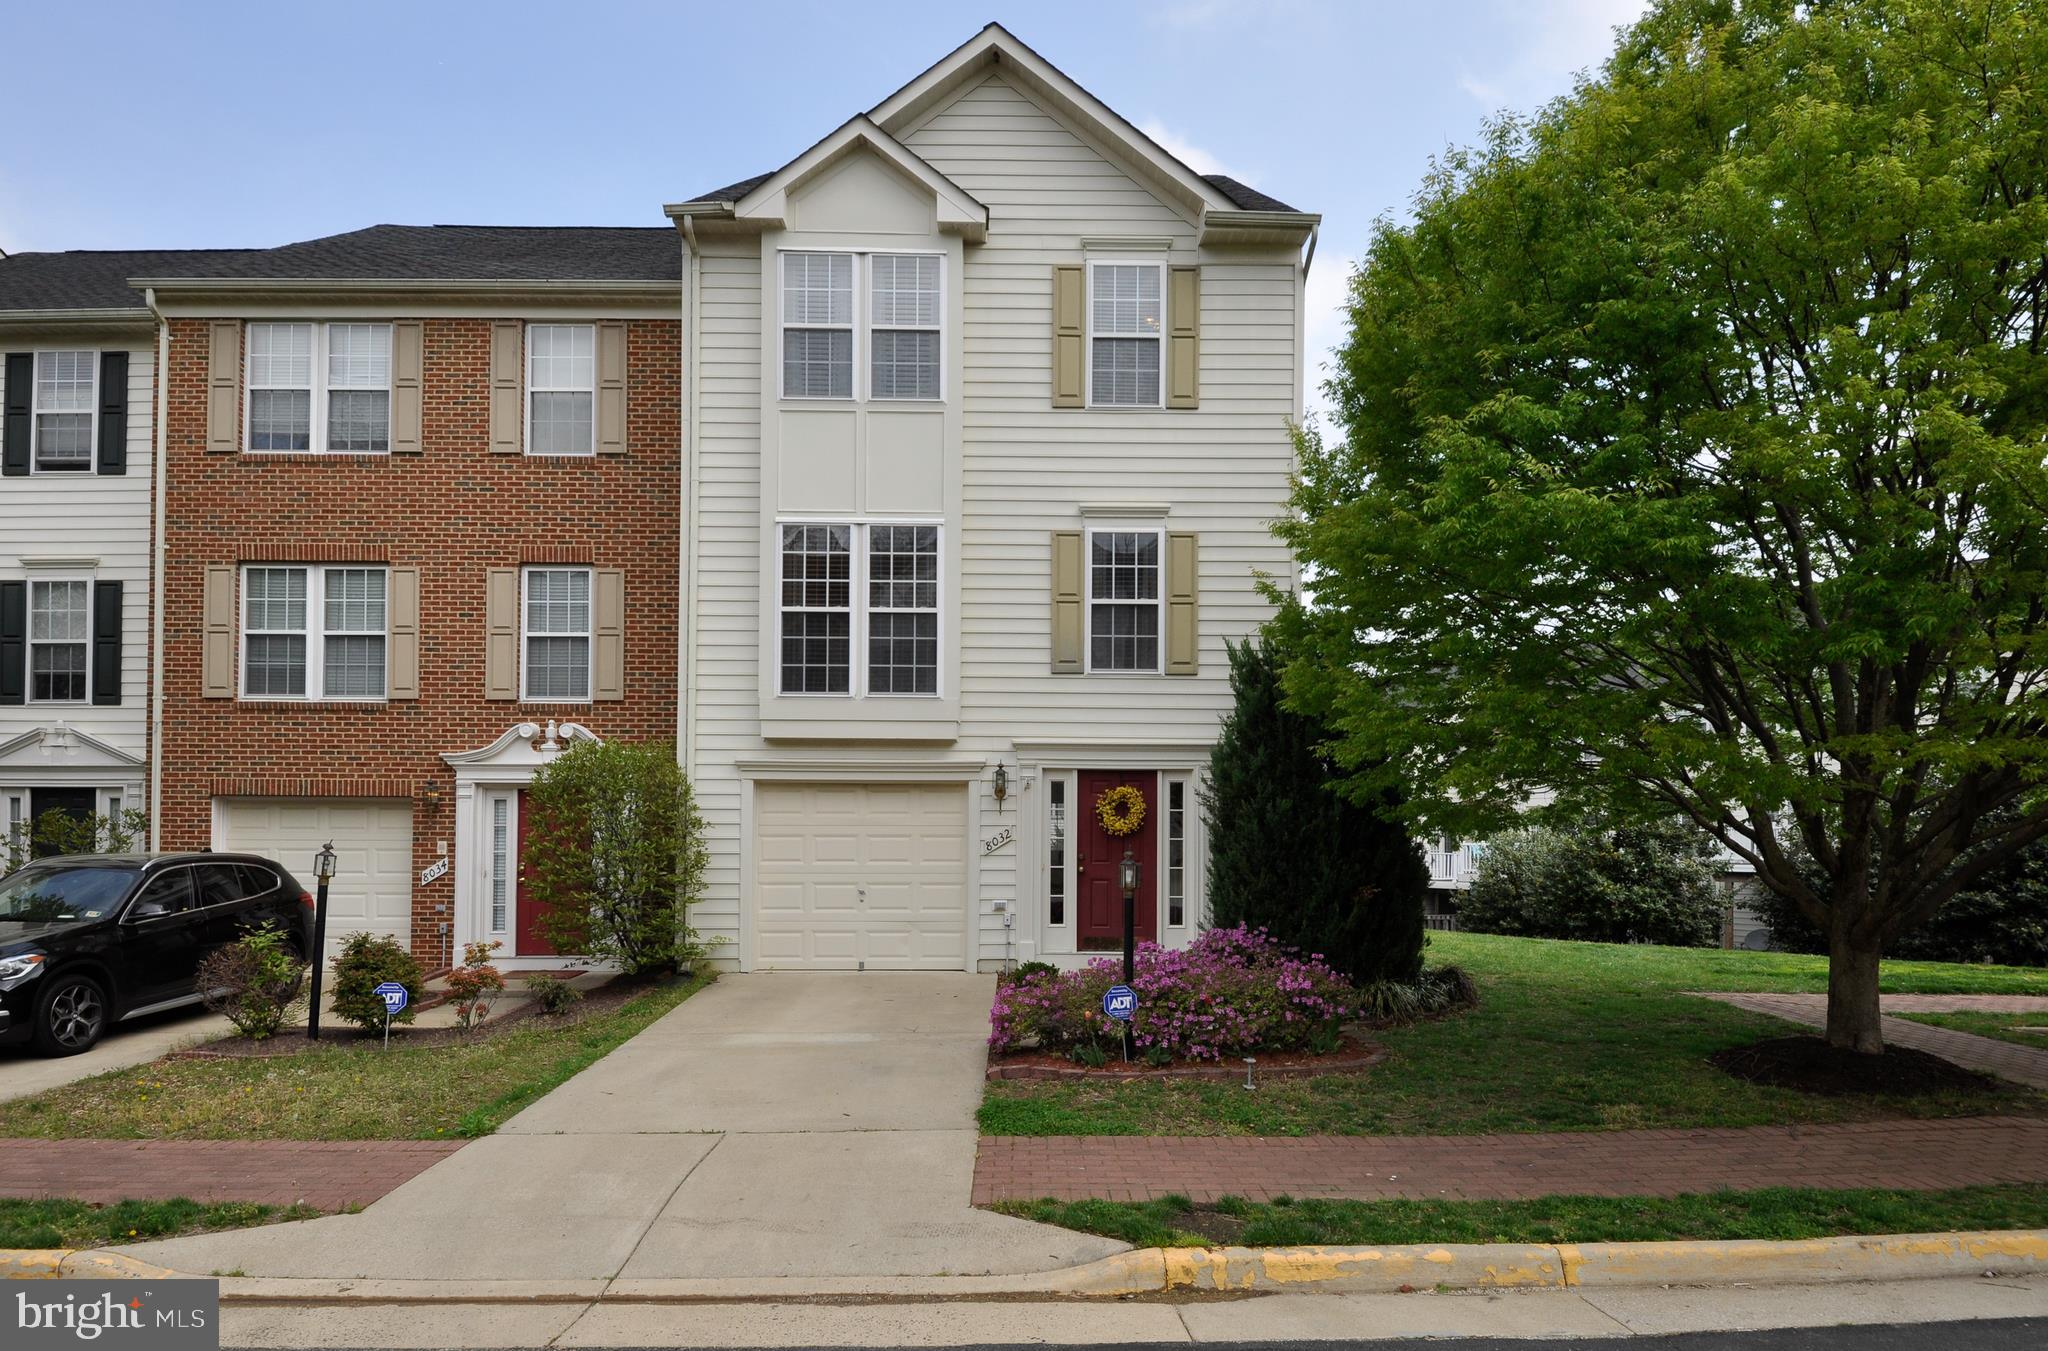 Beautiful end-unit townhome in Lorton Station South! New carpet, new granite countertops (installed after pics!), gleaming hardwood floors throughout main level, sunroom/dining area, 3 finished levels, deck, patio, fenced in backyard! All in an amenity filled community close to everything (minutes to VRE, I95, Ft. Belvoir..walk to shopping and dining!). Don't miss this one!